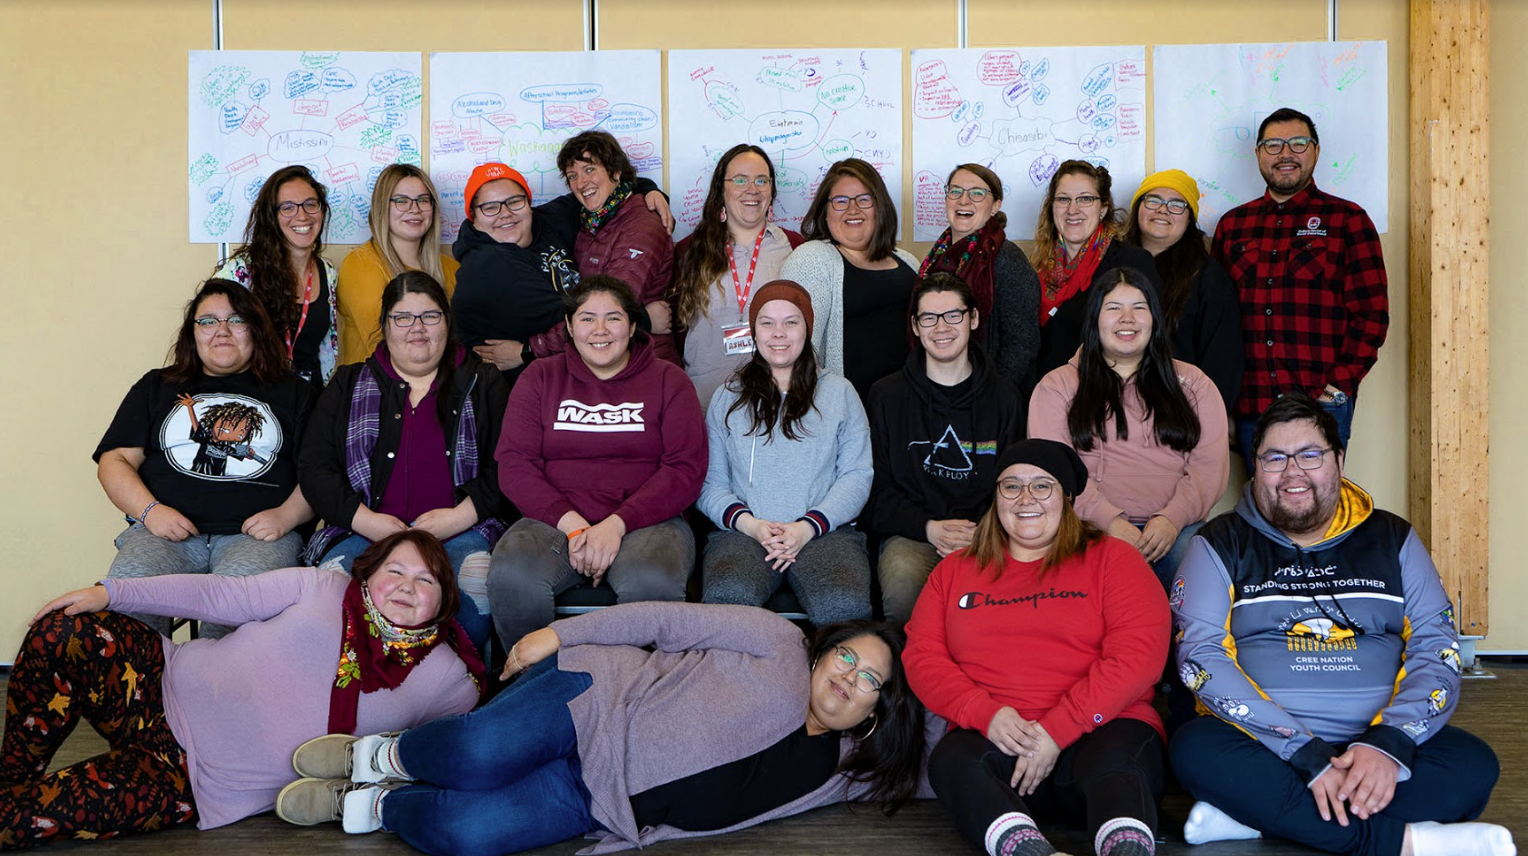 A group of youth representatives and mentors from the Cree Nation Youth Council smiling after a